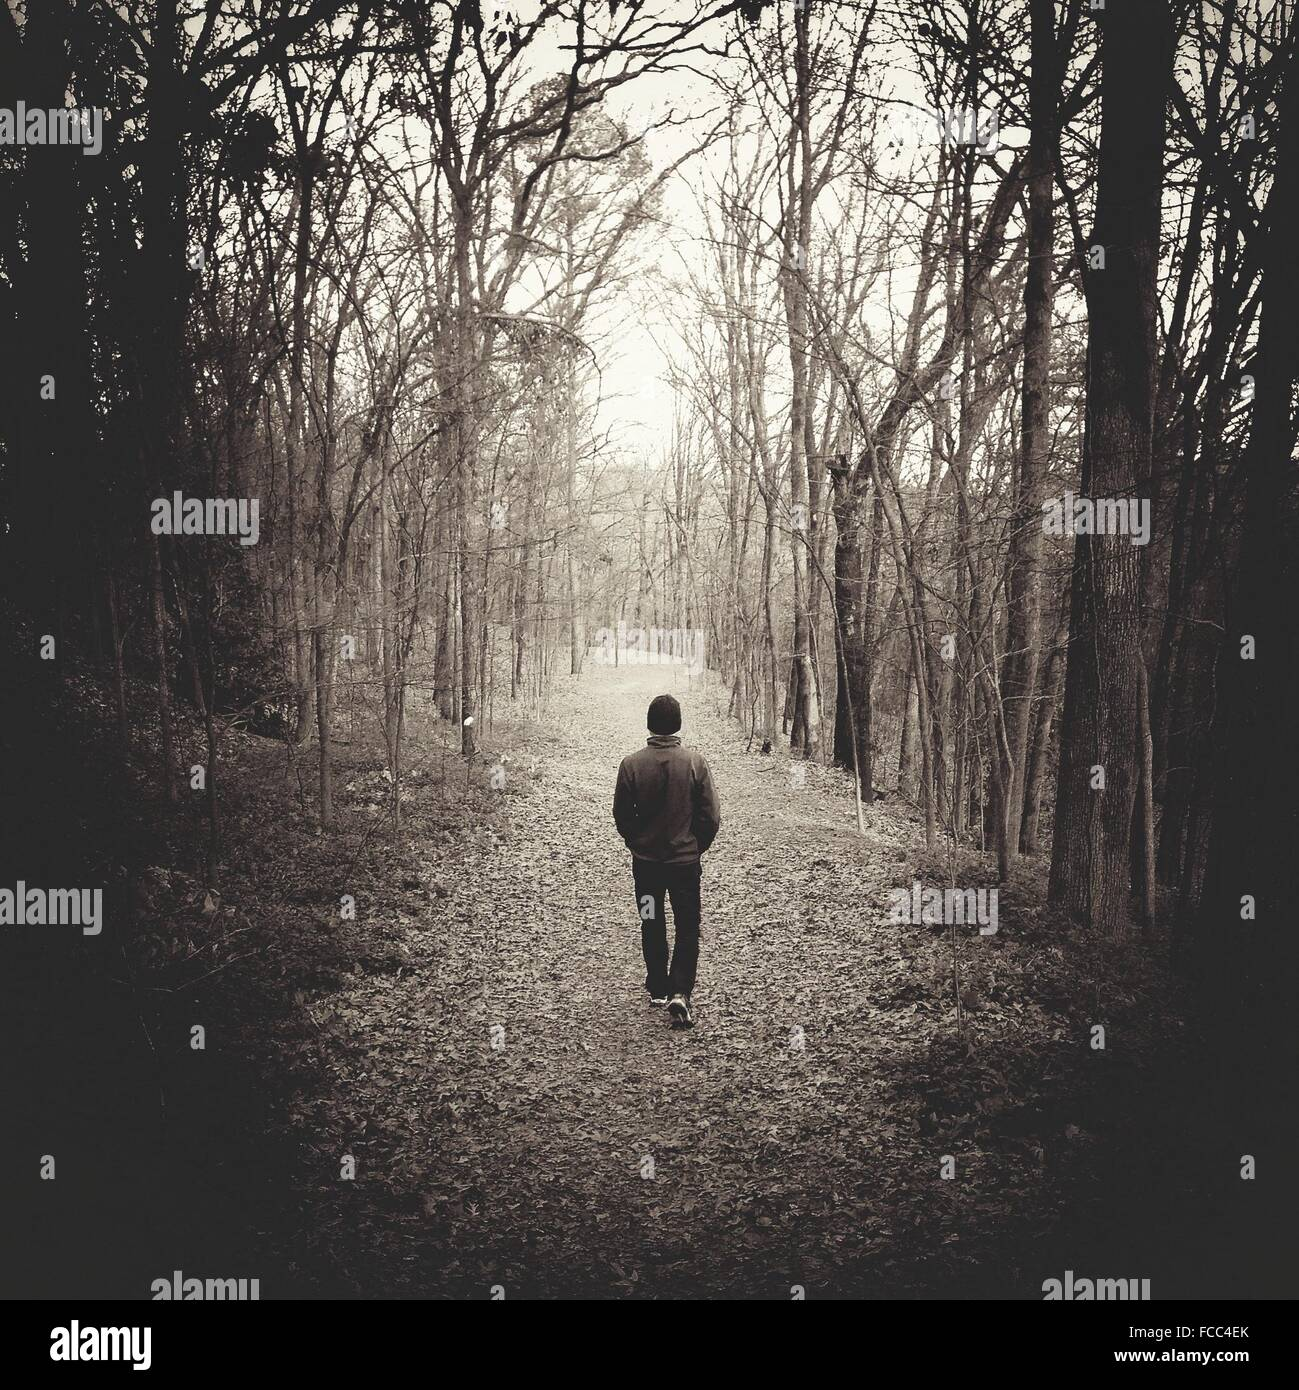 Man Walking In Autumn Forest - Stock Image